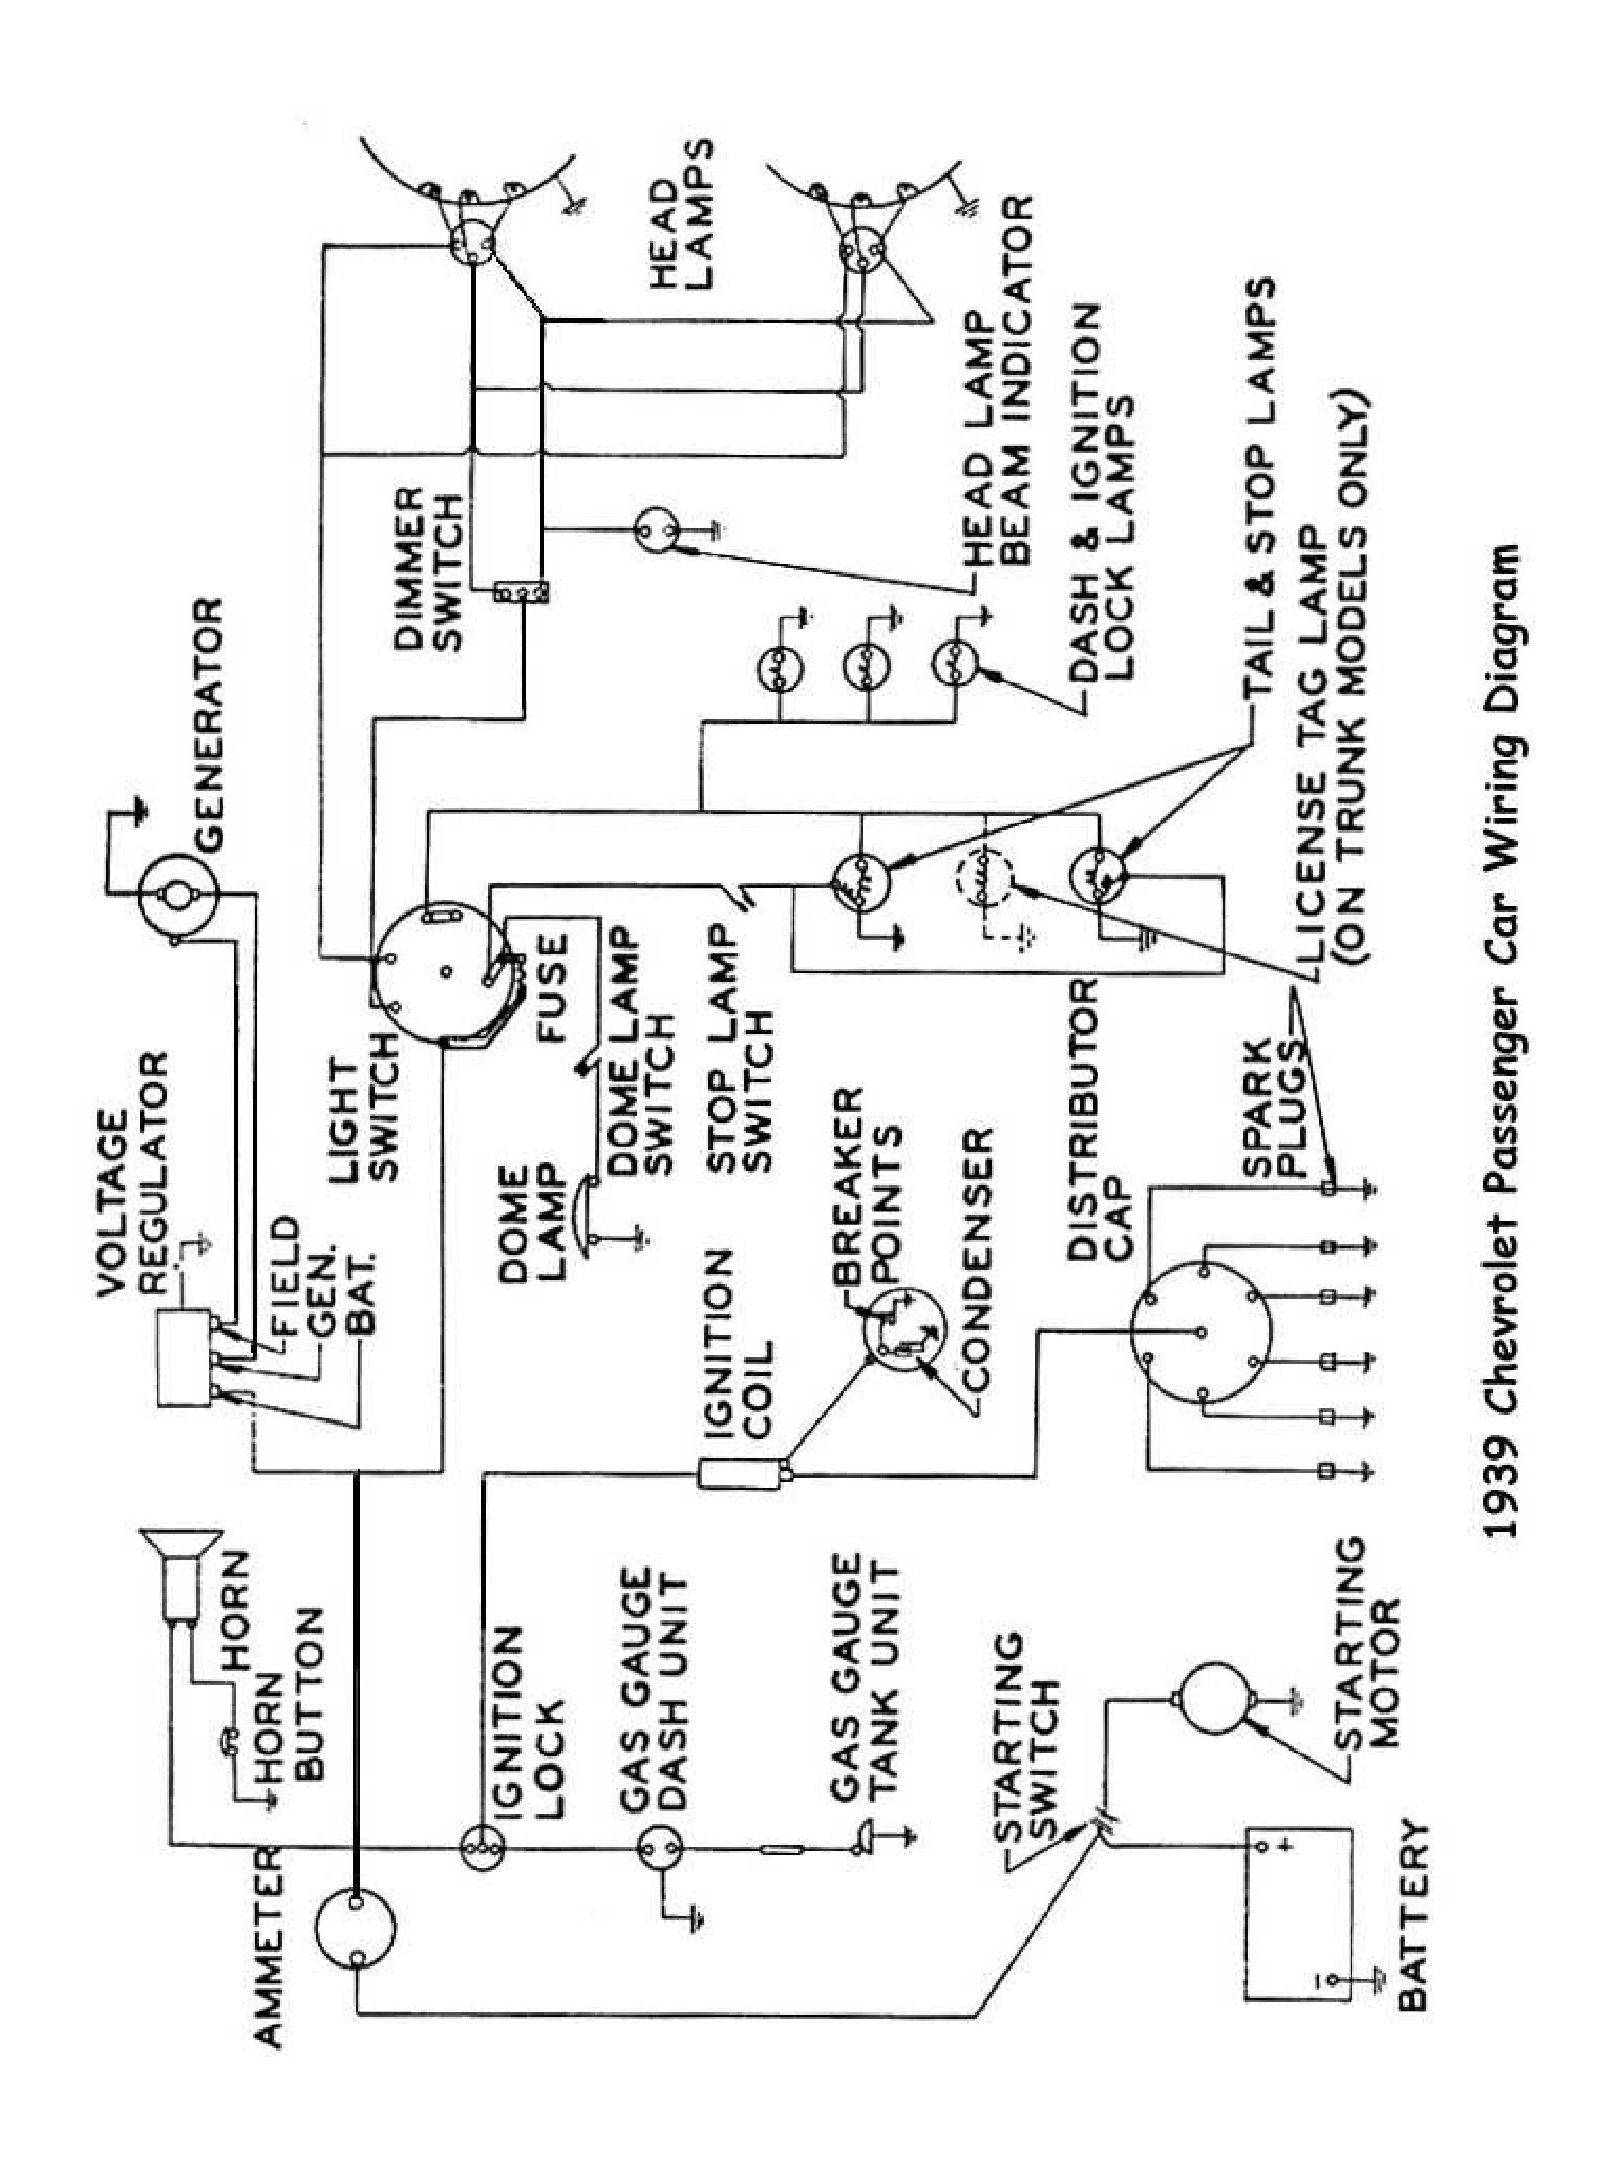 car ignition circuit diagram chevy wiring diagrams  u2013 my